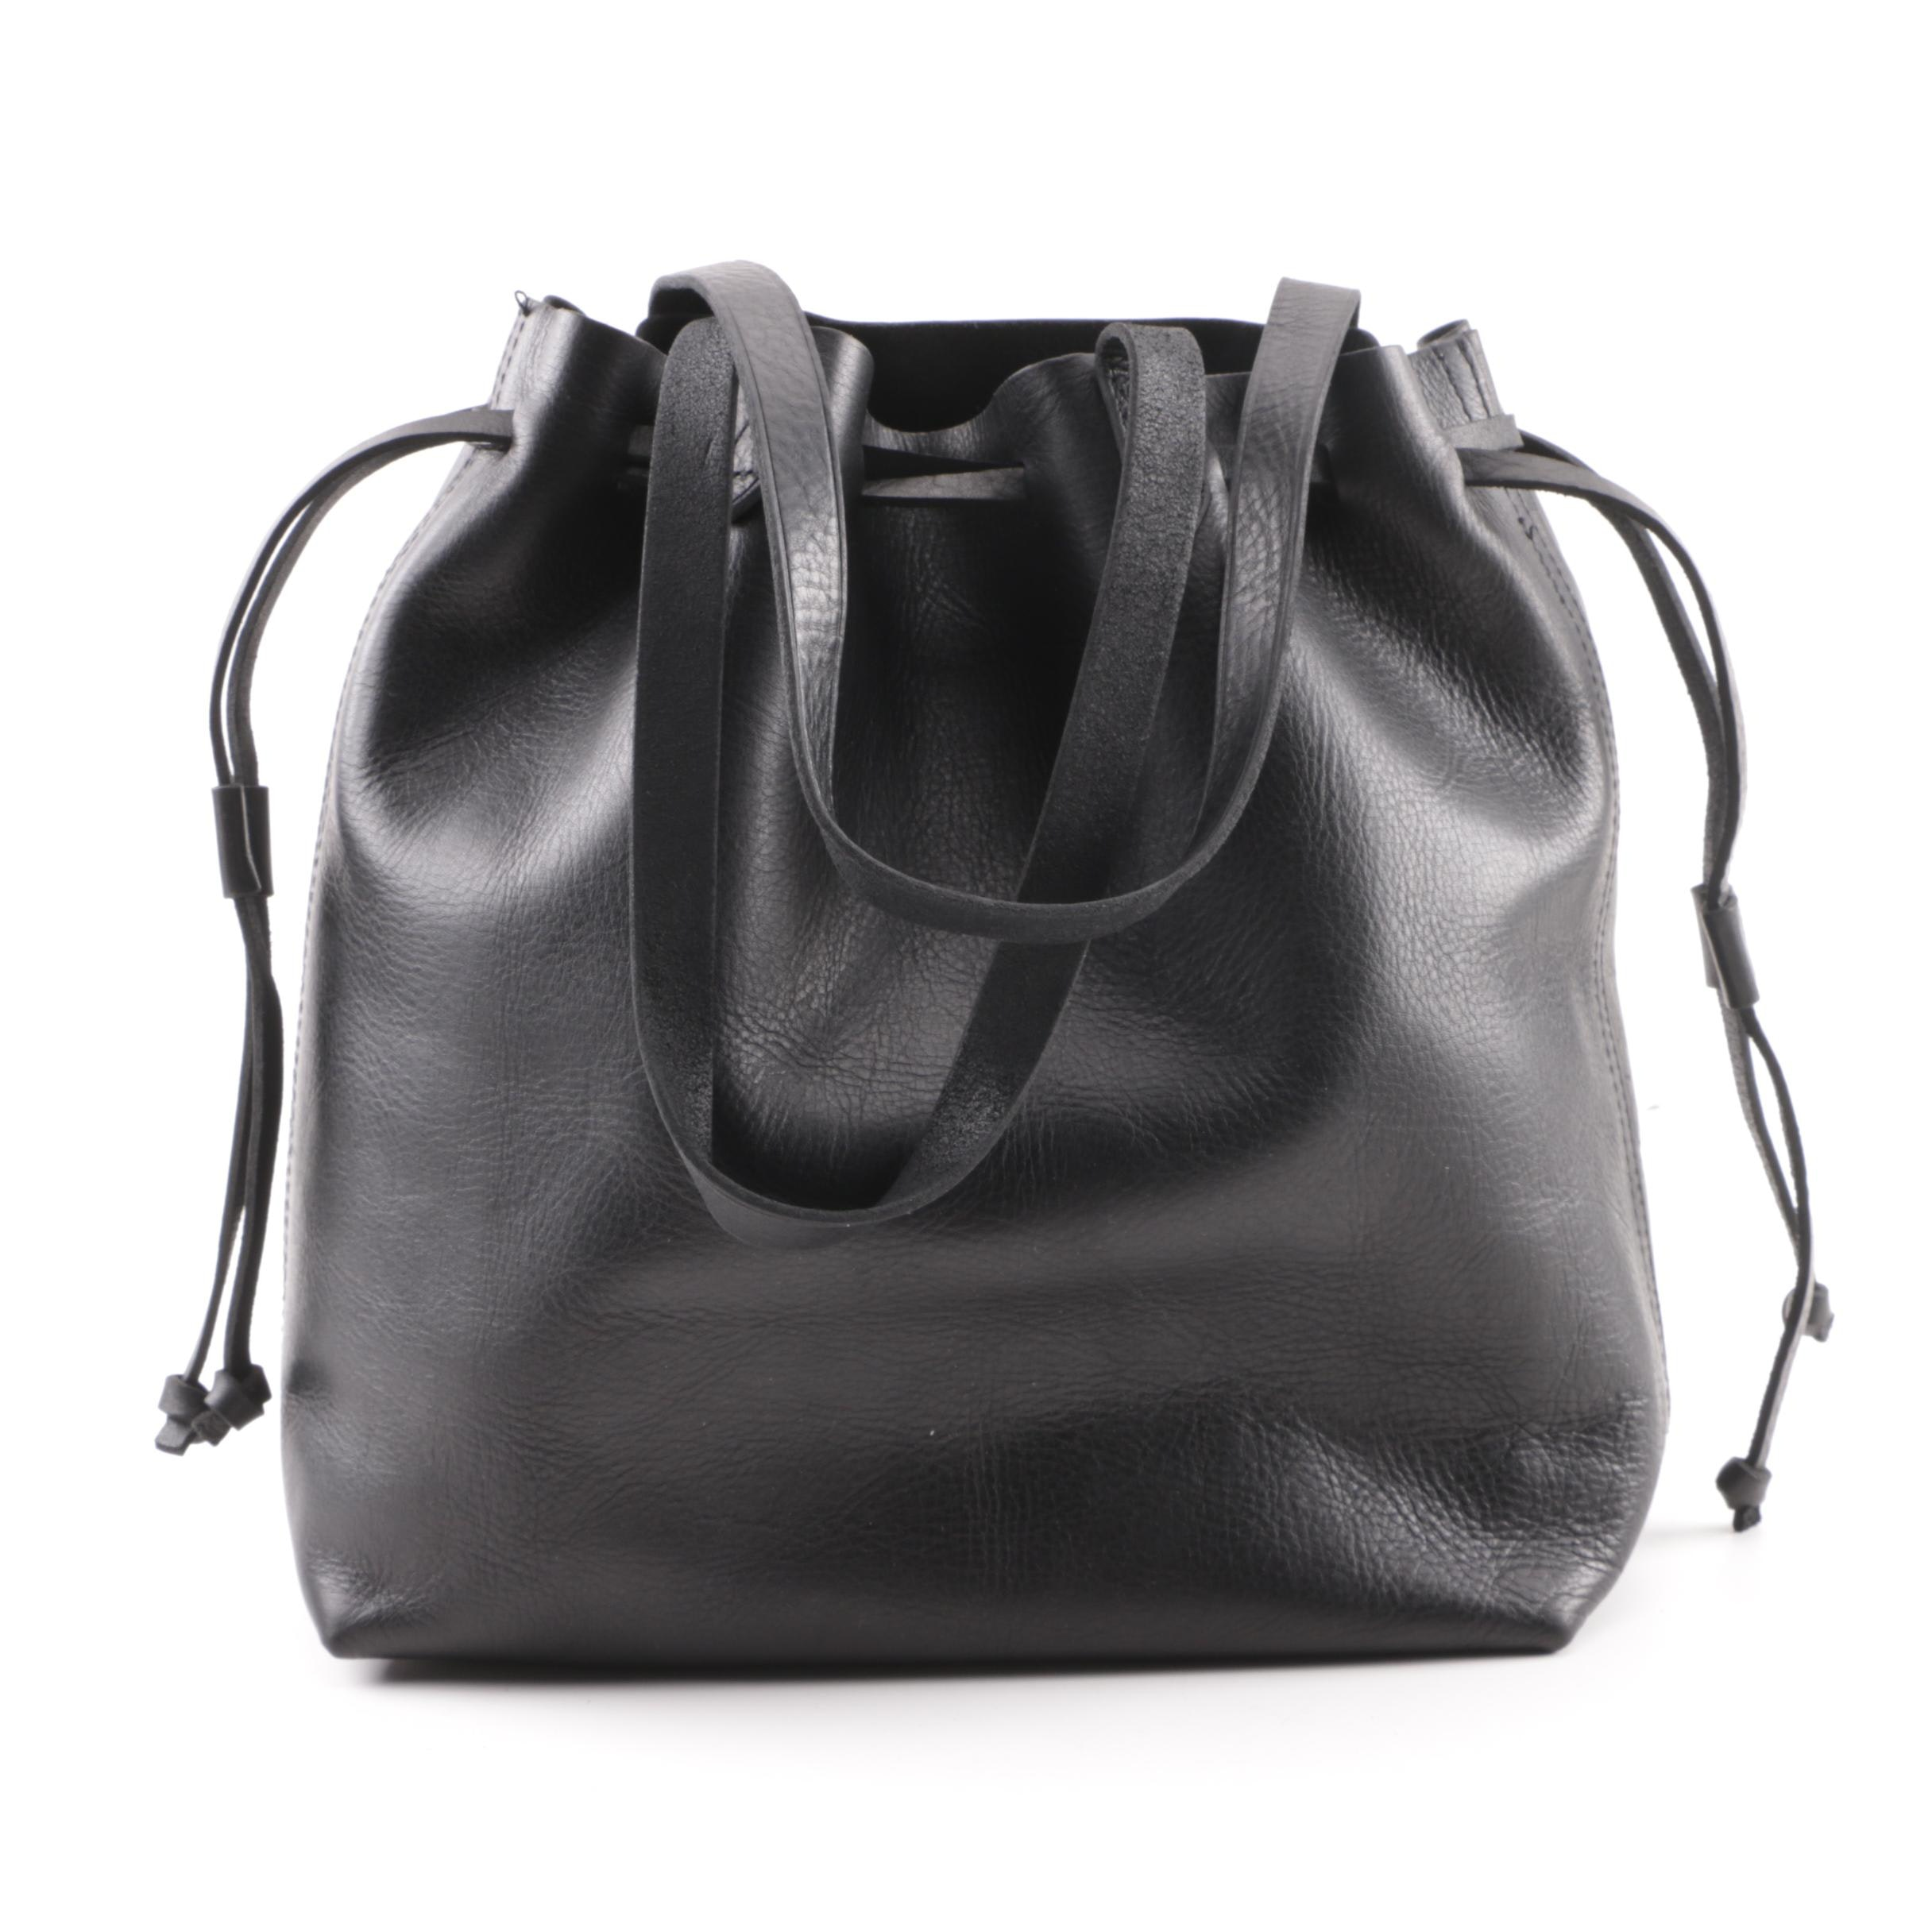 Madewell Black Leather Convertible Tote